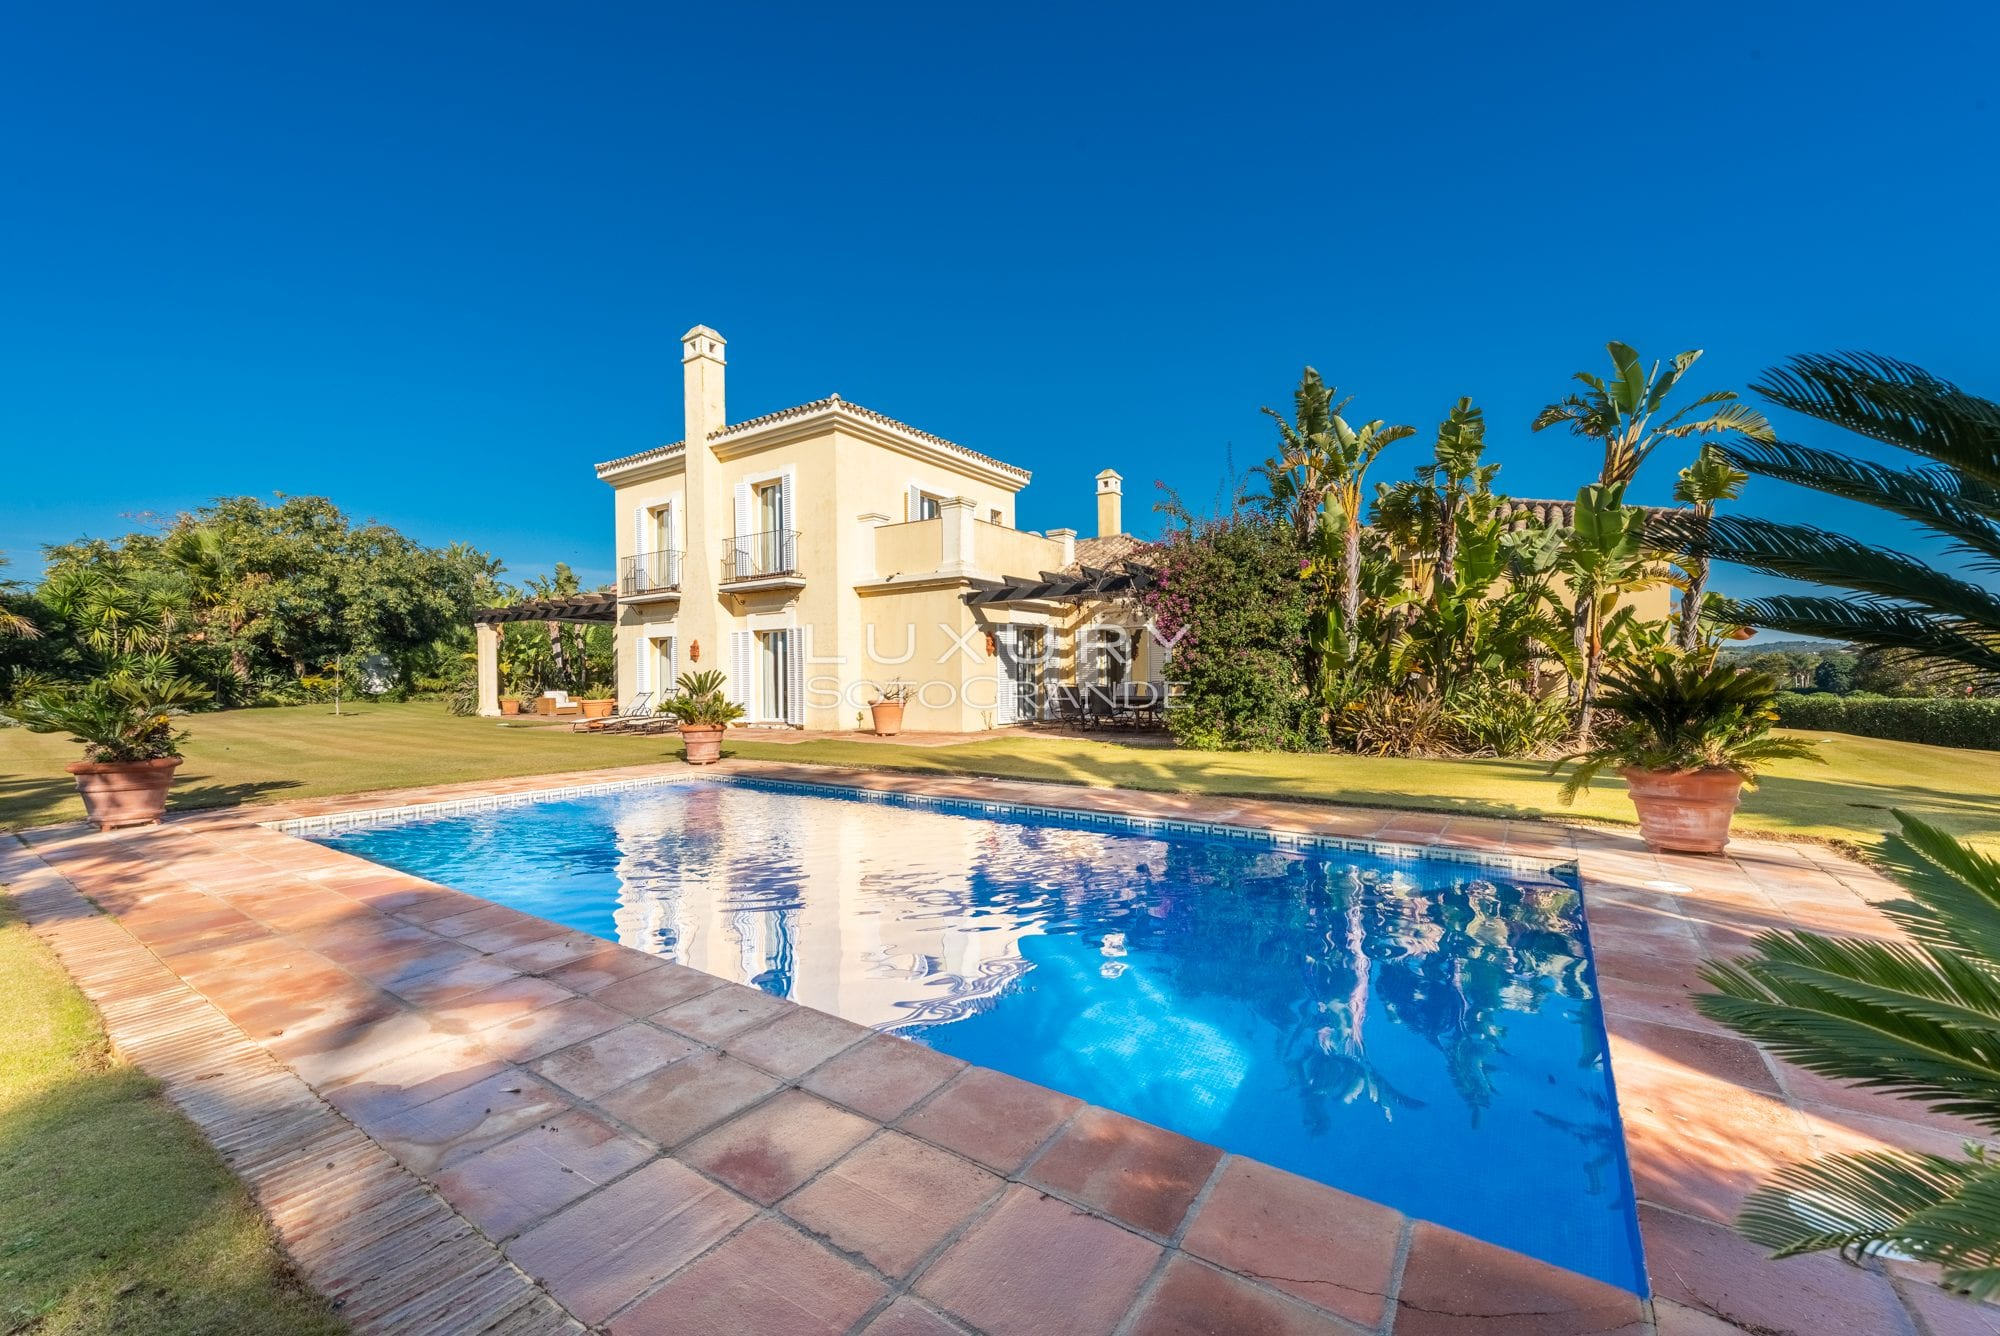 Wonderful 4 bedroom villa with spectacular views for rent.